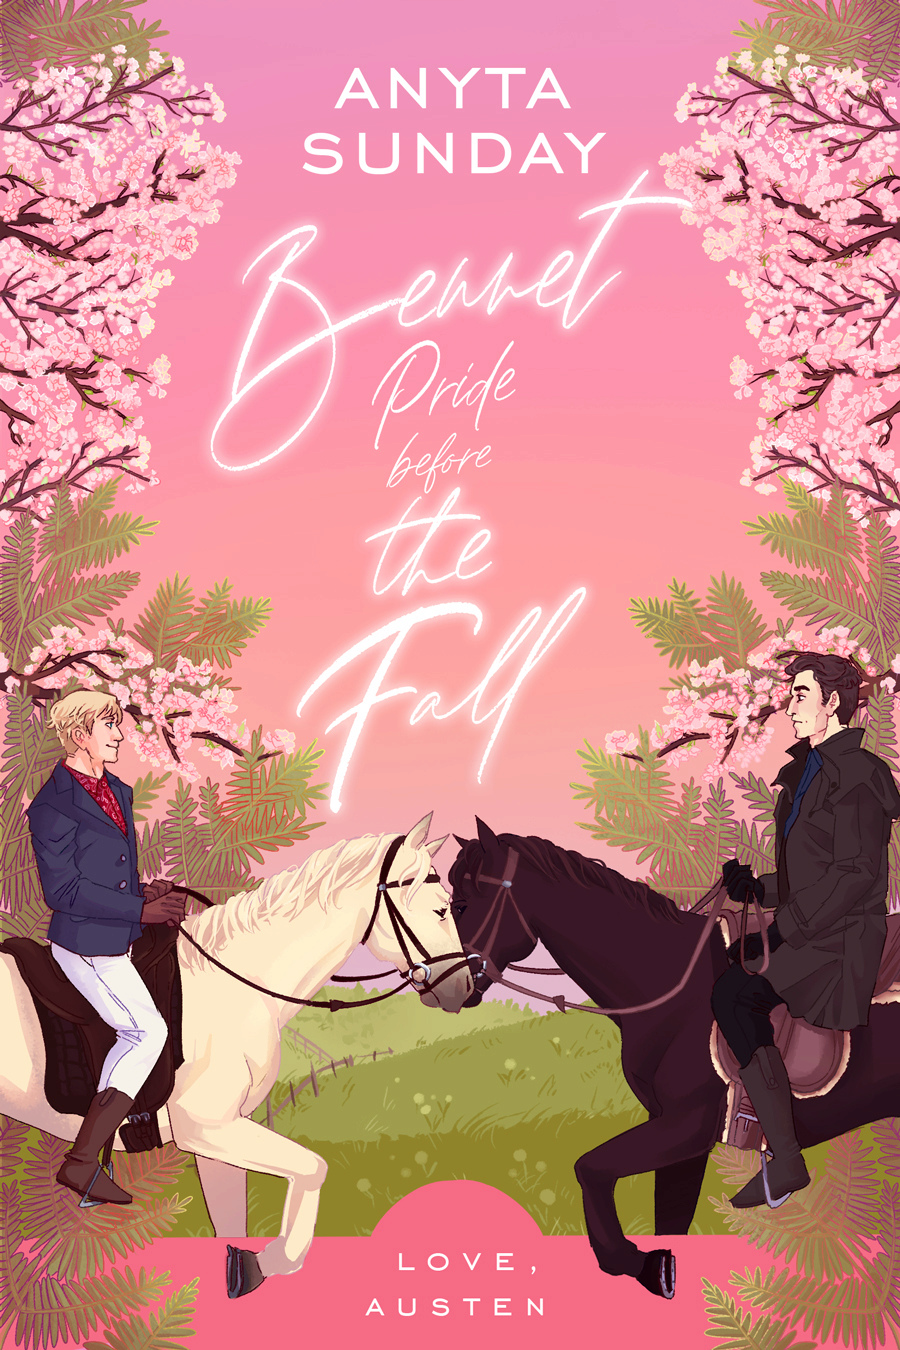 Love, Austen - Tome 3 : Bennet, Pride before the fall de Anyta Sunday Bennet10